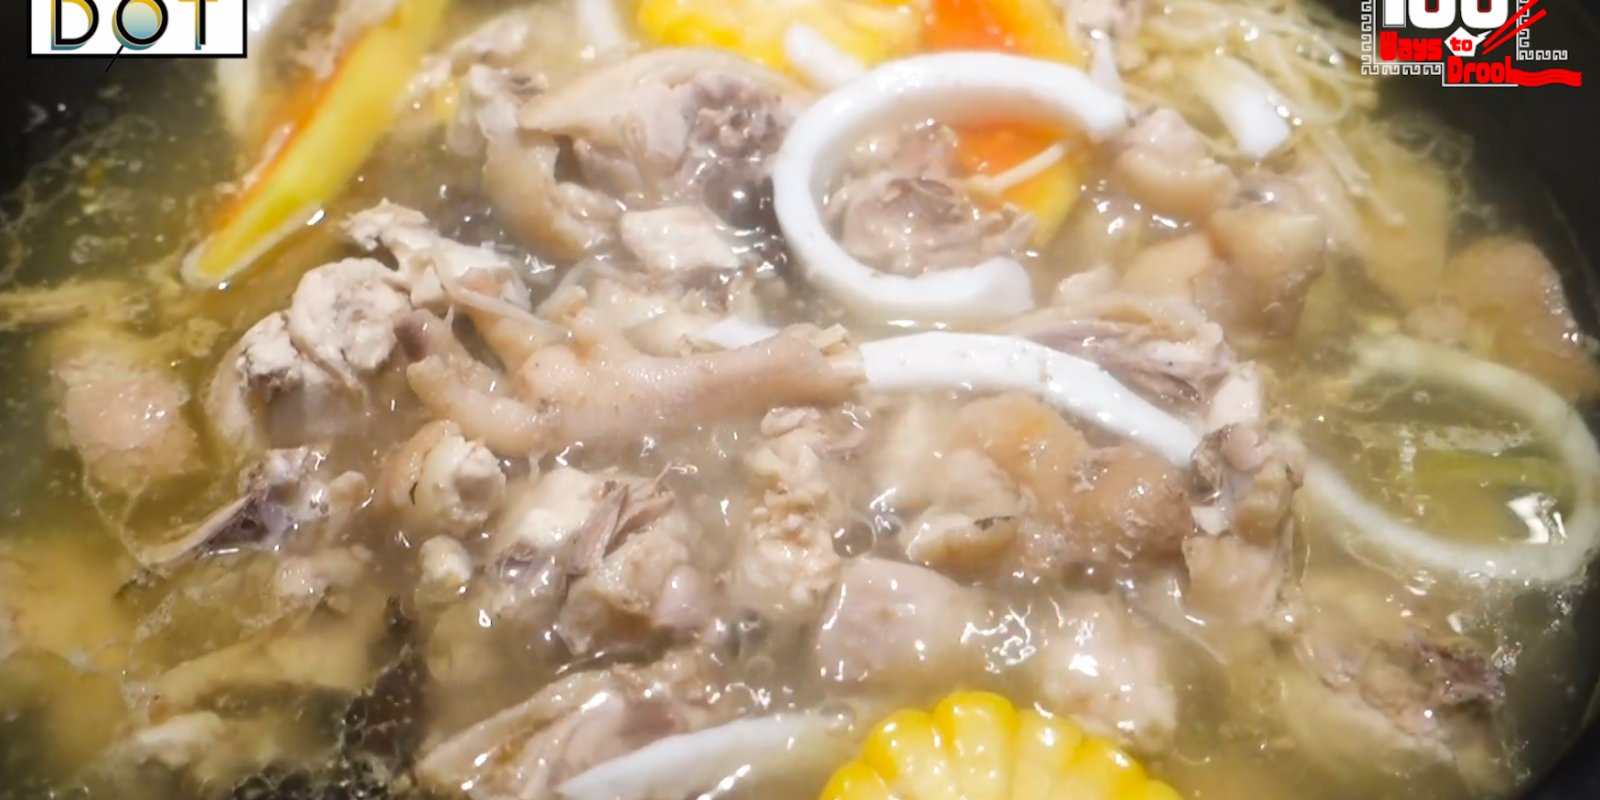 100 Ways To Drool | Soothing and heart-warming delicacy: Hainan Coconut Chicken Hotpot